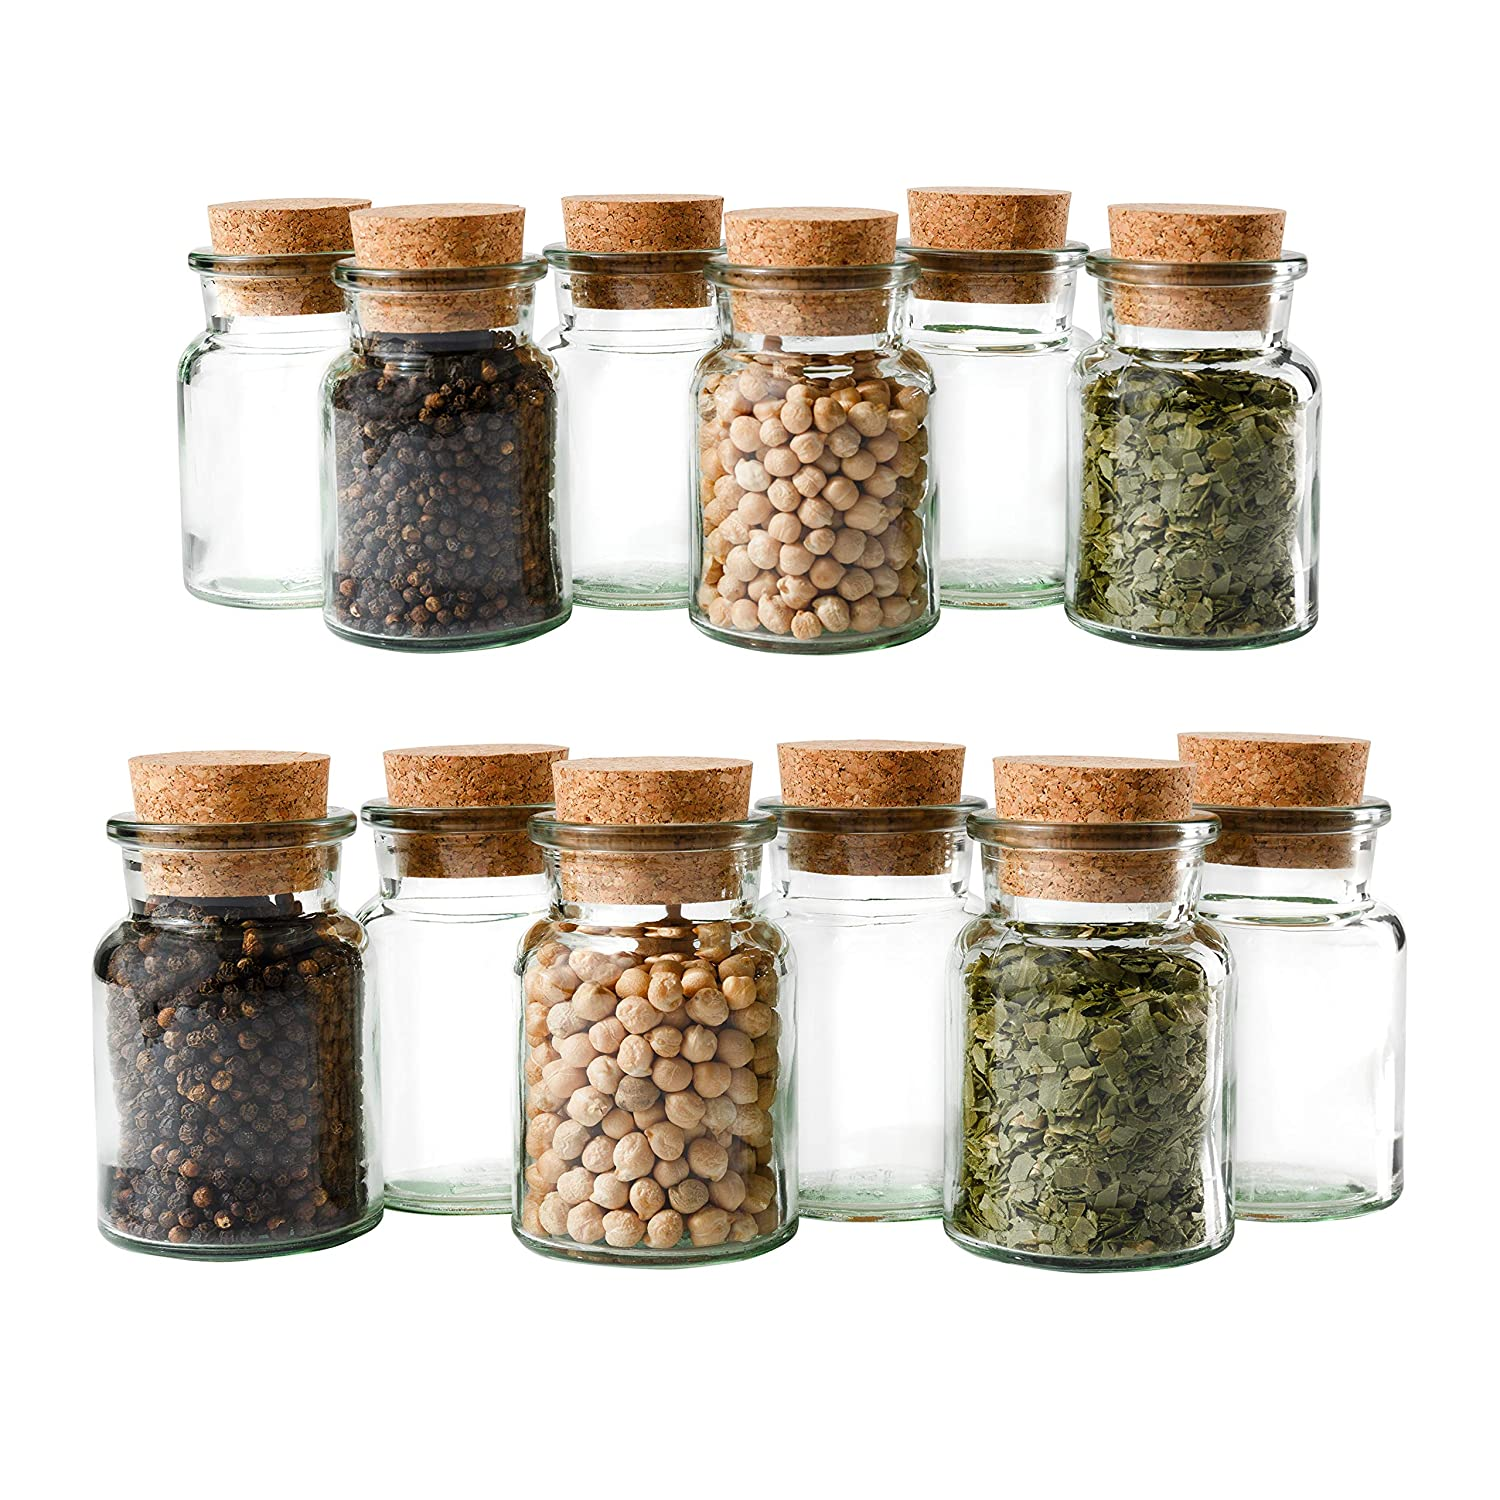 Mambocat Set of 12 Spice Jars | Capacity 150 ml | Reusable Glass Jar with Cork Lid | High-Quality Round Glass | Storage of Tea Herbs Spices